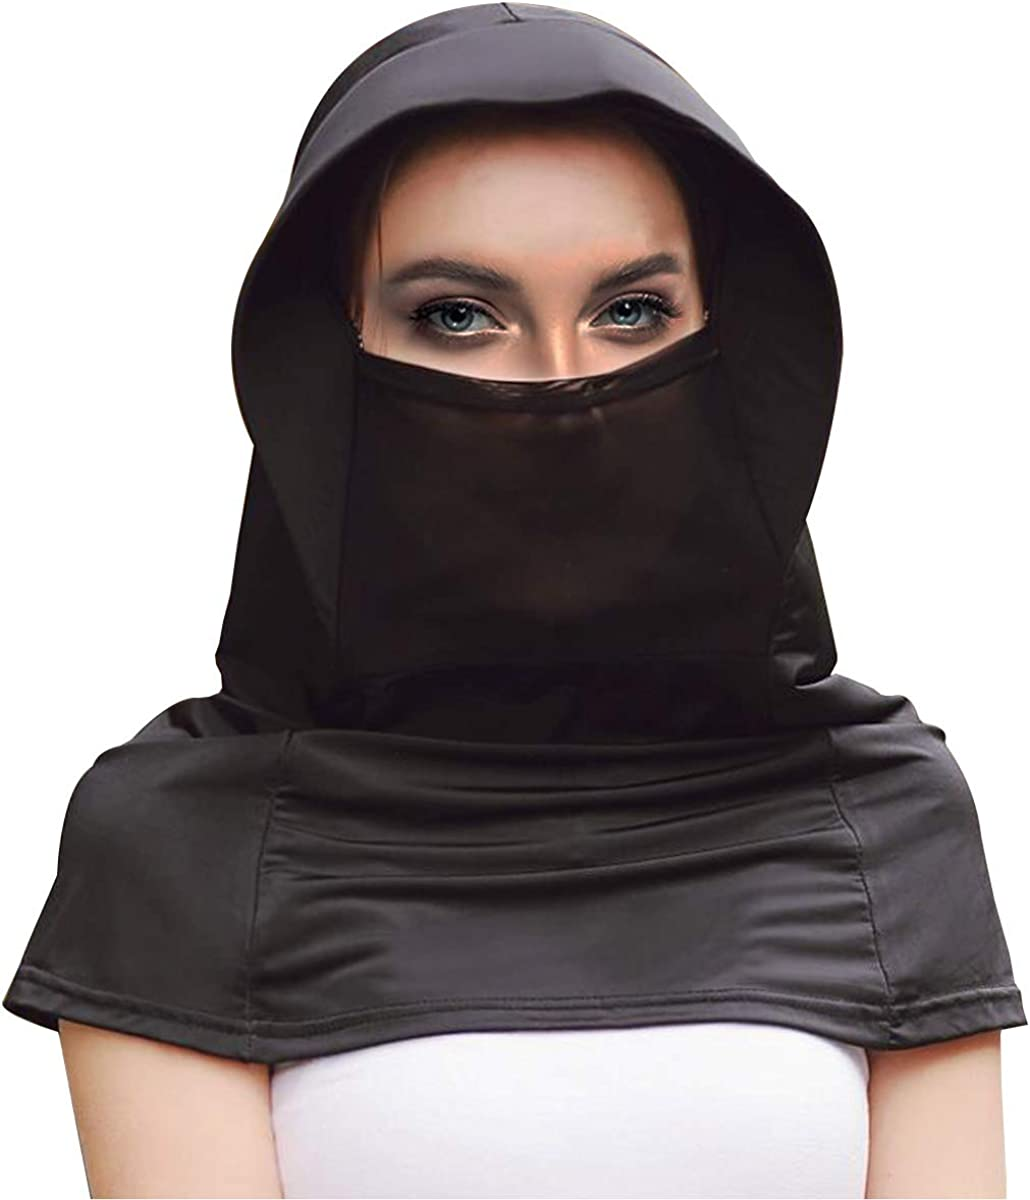 Women Face Scarf Chiffon Dust Proof Face Covers Wrap Neck Gaiter Breathable Sun Mask UV Protection Black